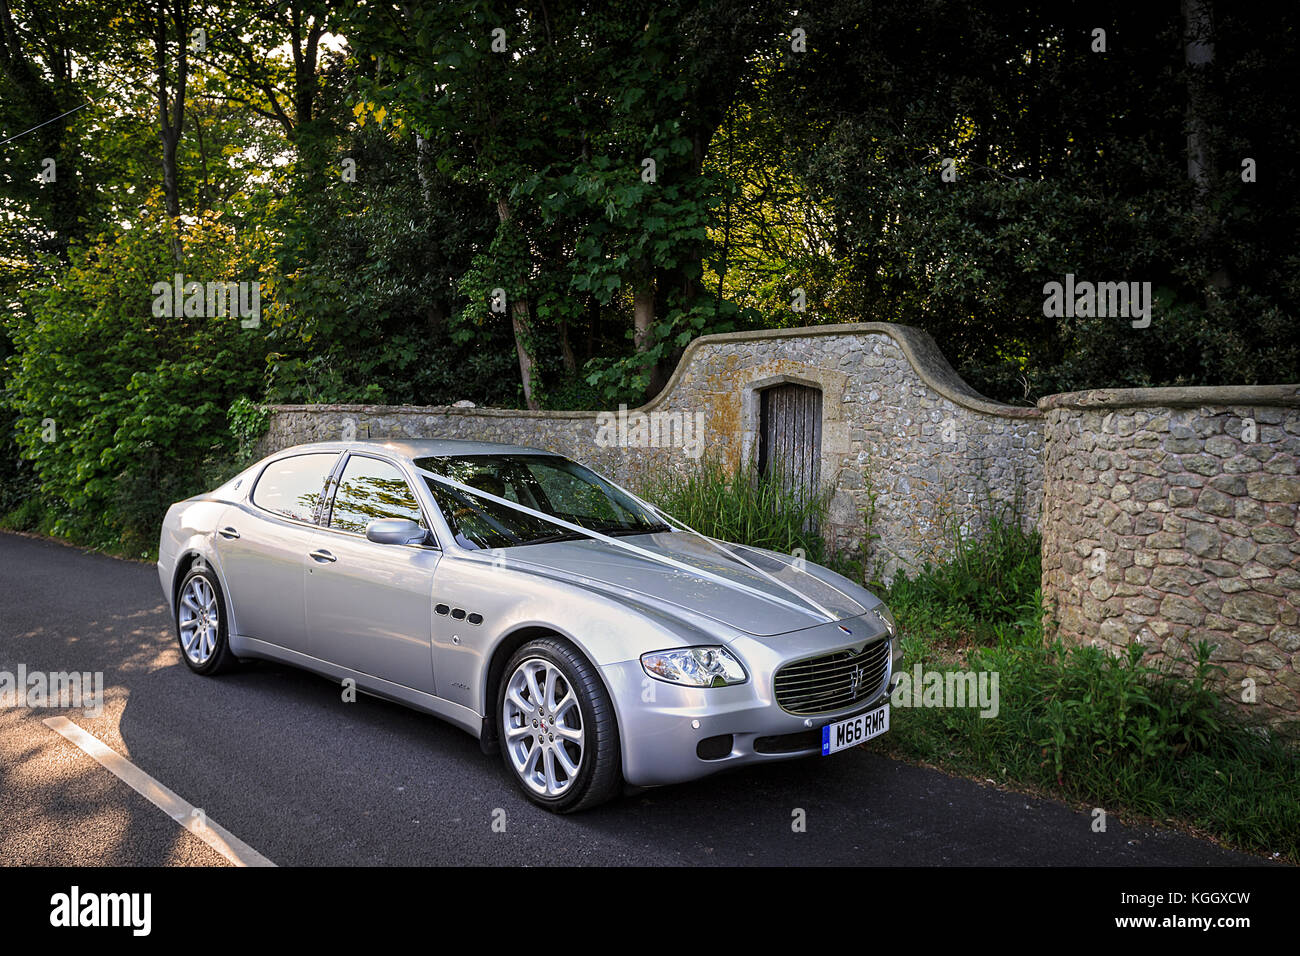 The Maserati Quattroporte Was Initially Offered In Only One Configuration,  Equipped With The DuoSelect Transmission